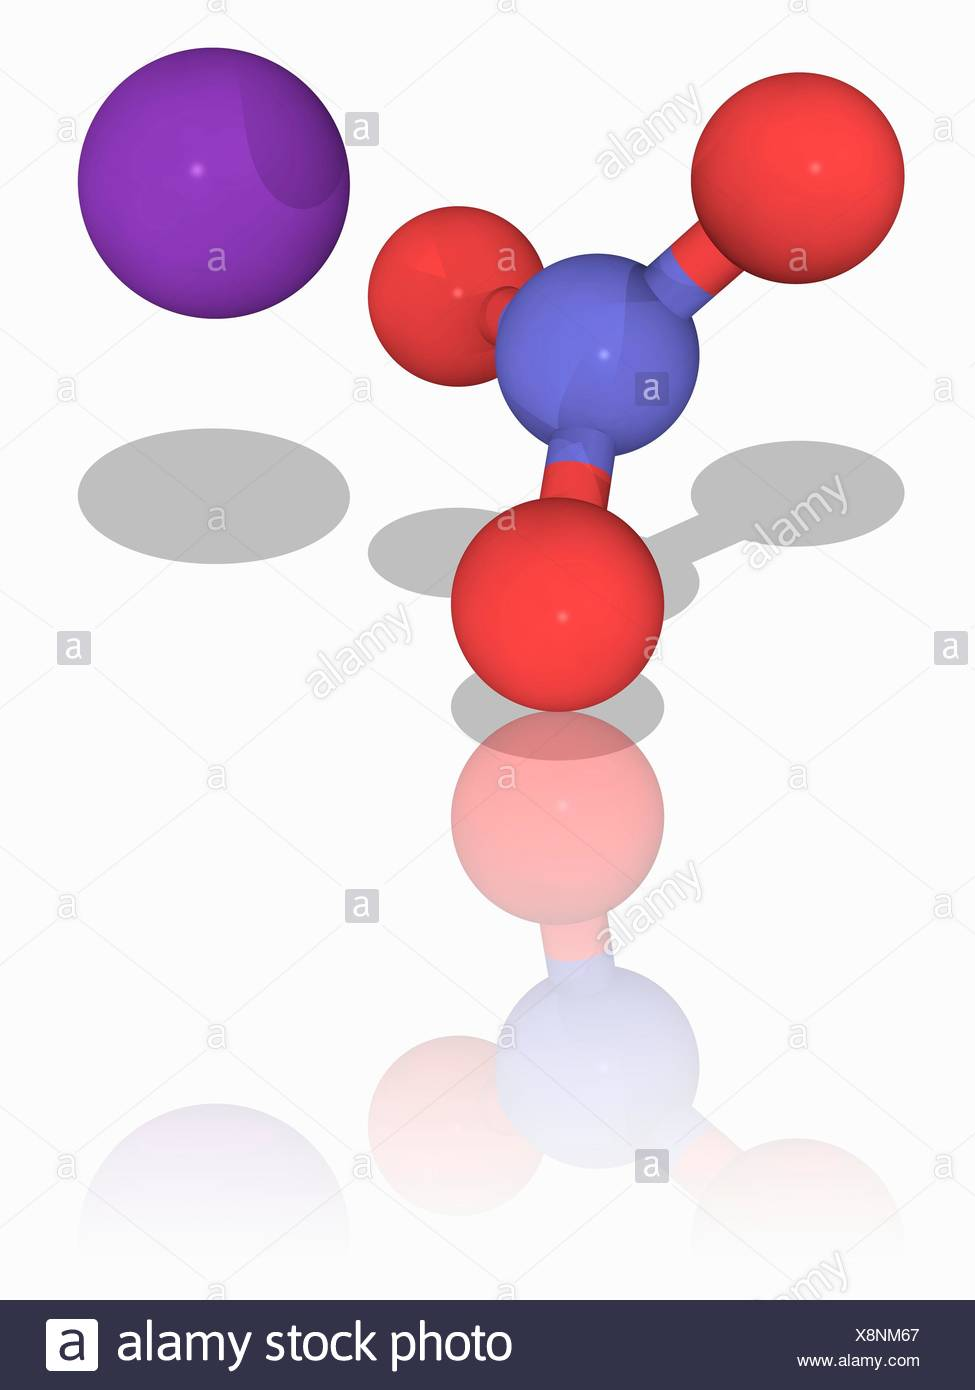 hight resolution of molecular model of the inorganic chemical compound potassium nitrate kno3